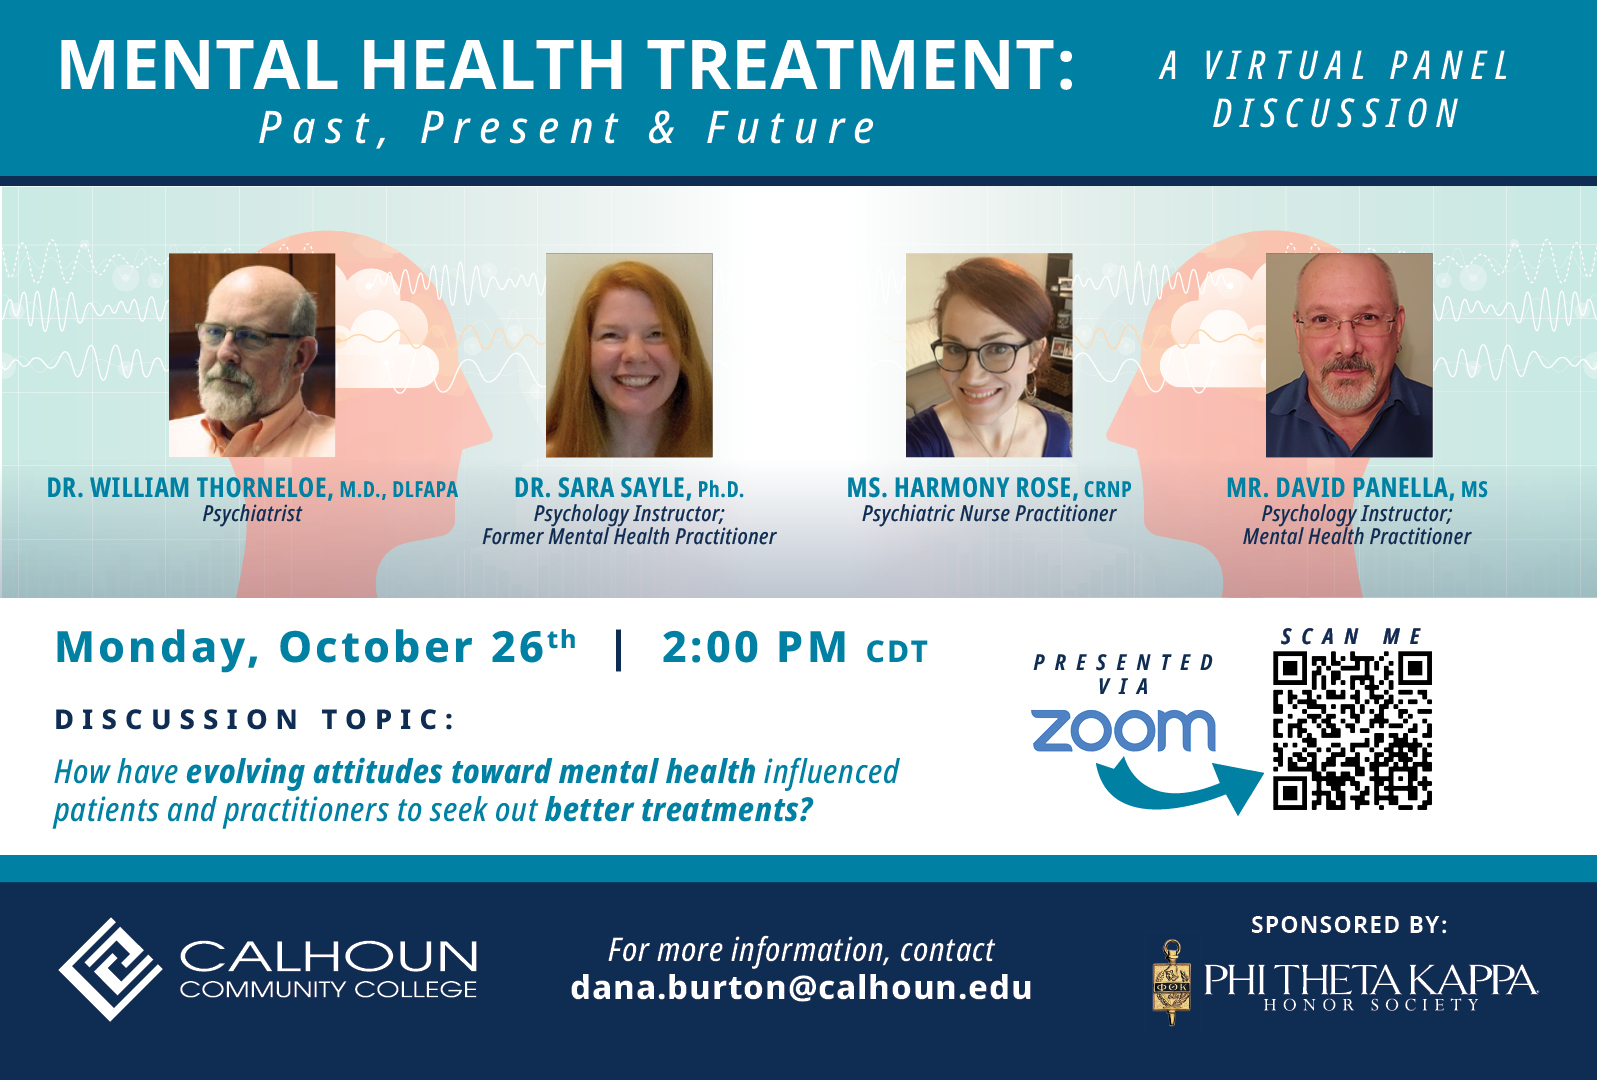 mental health panel discussion 10-20